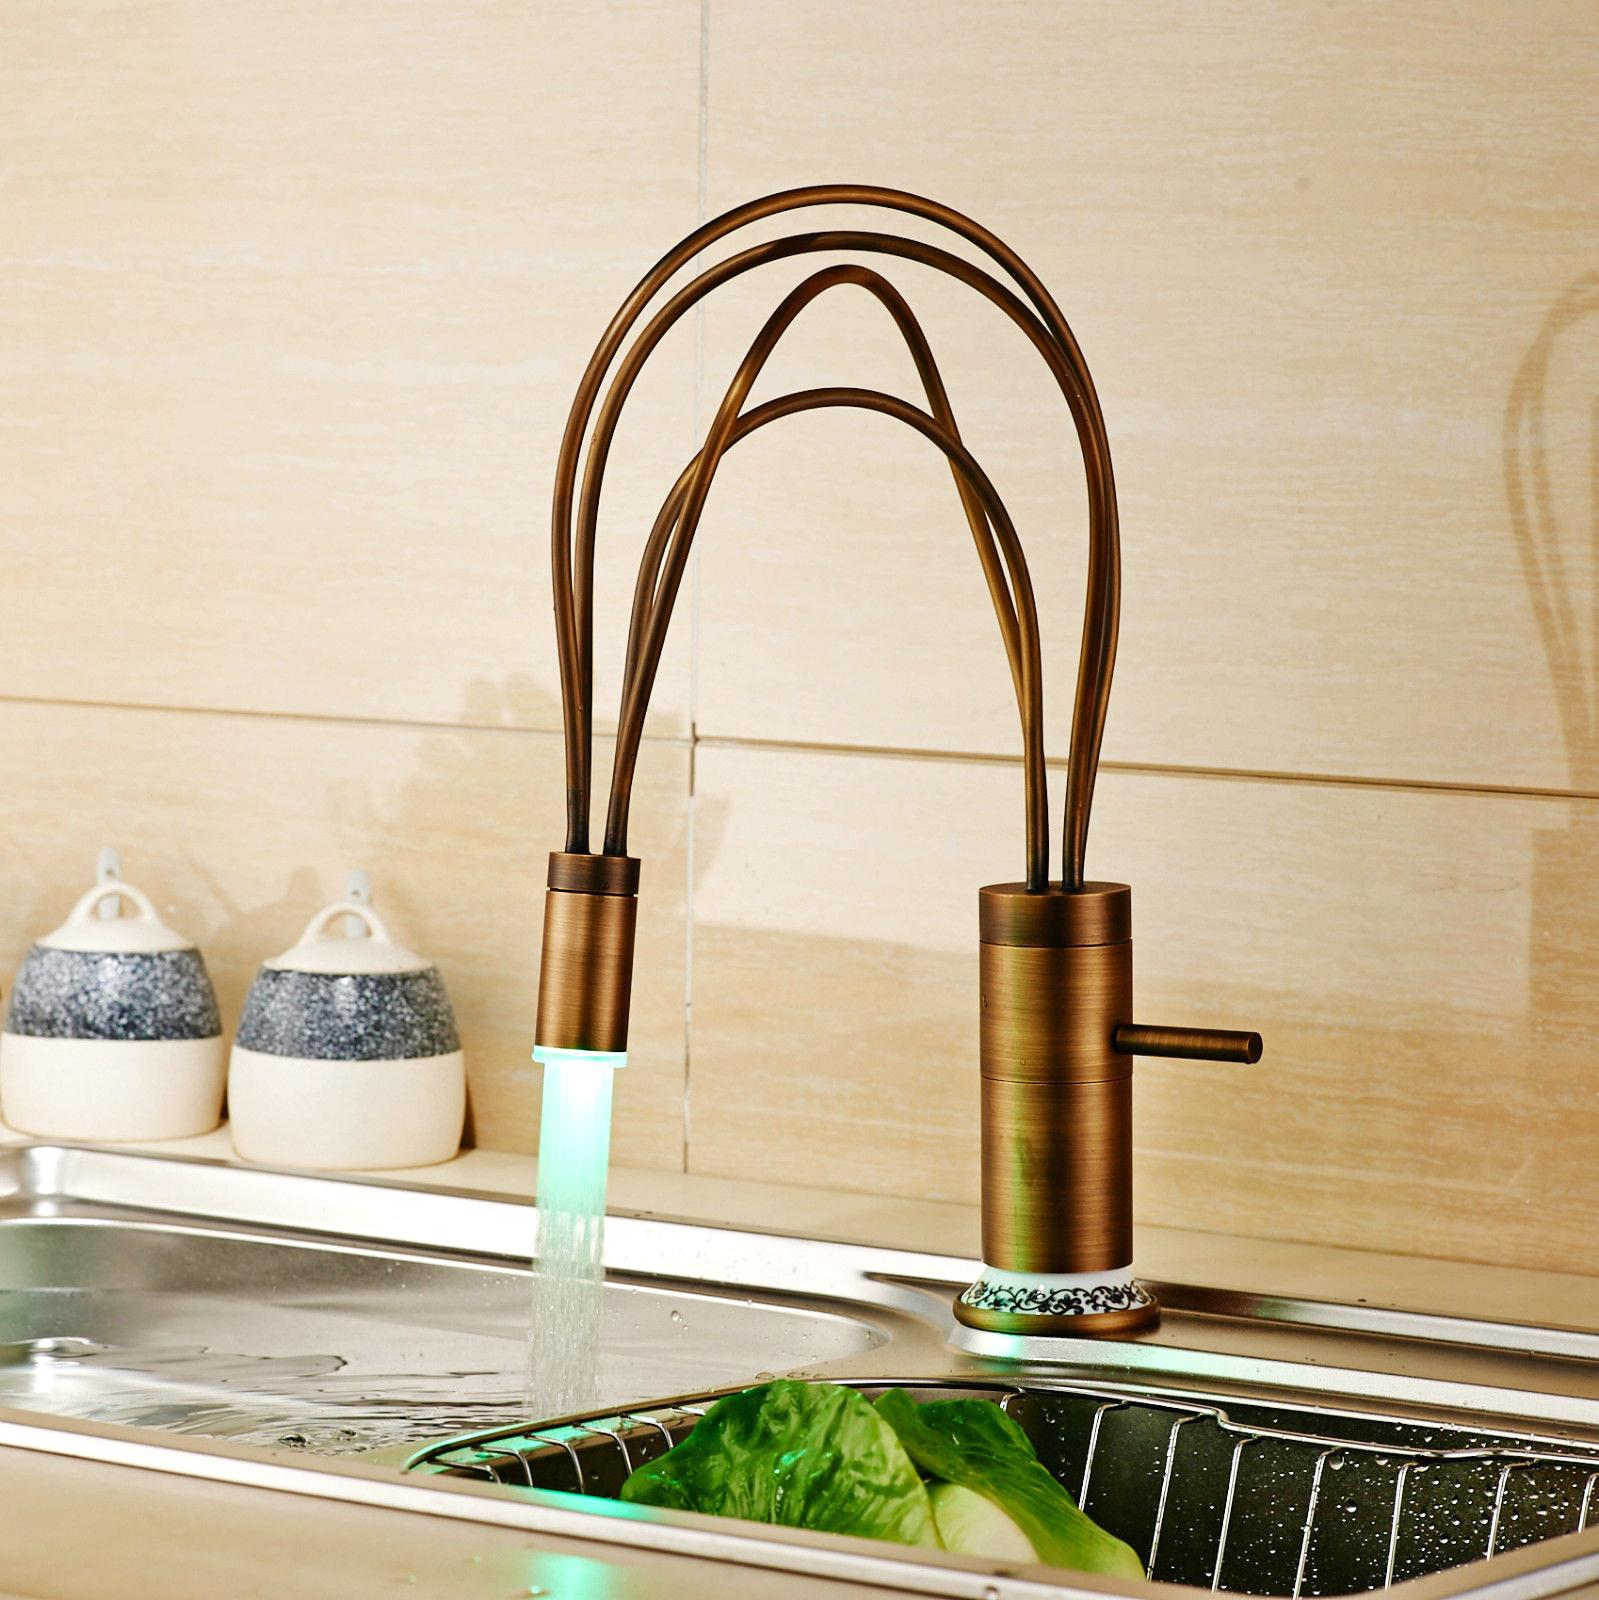 antique brass kitchen sink faucet flexible kitchen taps with hot and cold water led light deck - Brass Kitchen Sink